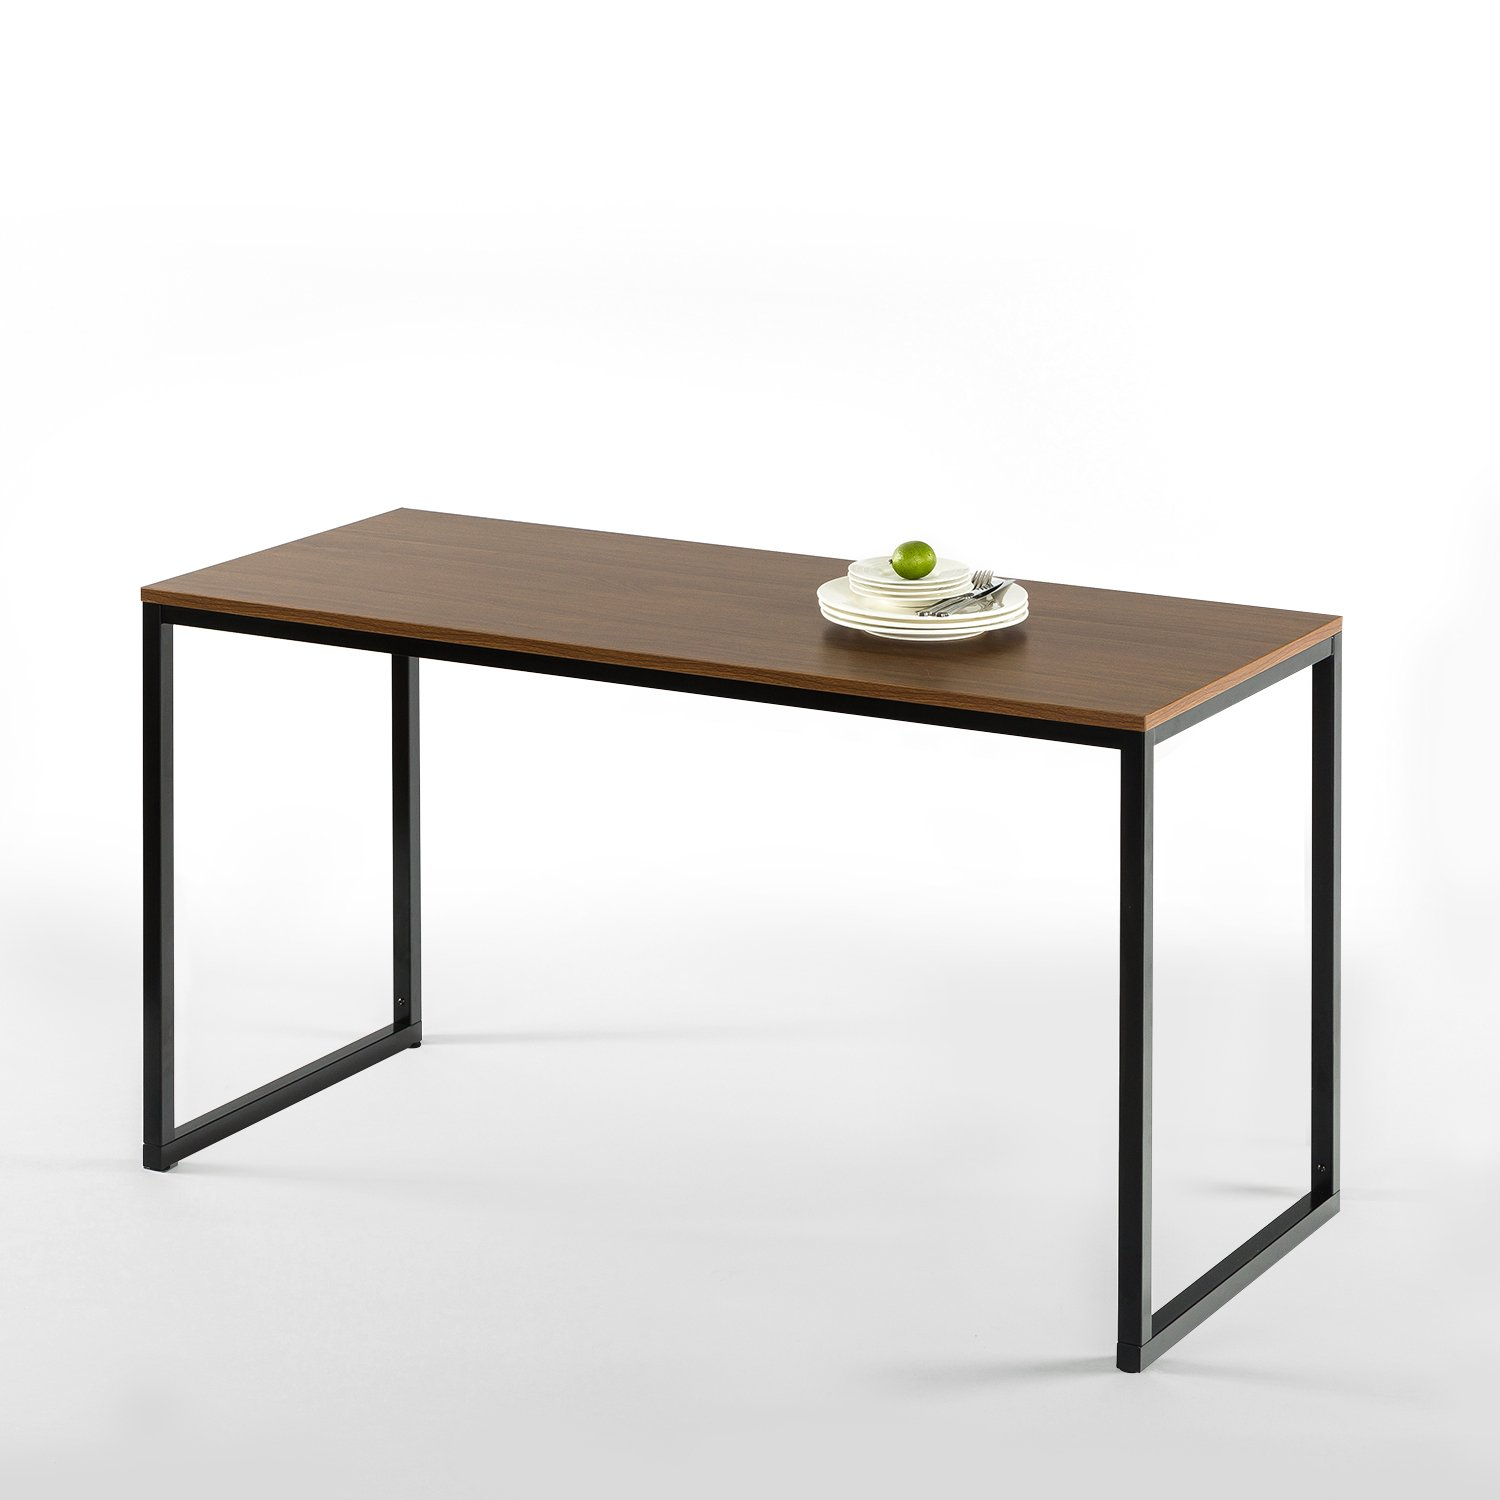 Zinus Modern Studio Collection Soho Rectangular Dining Table/Table Only/Office Desk/Computer Table